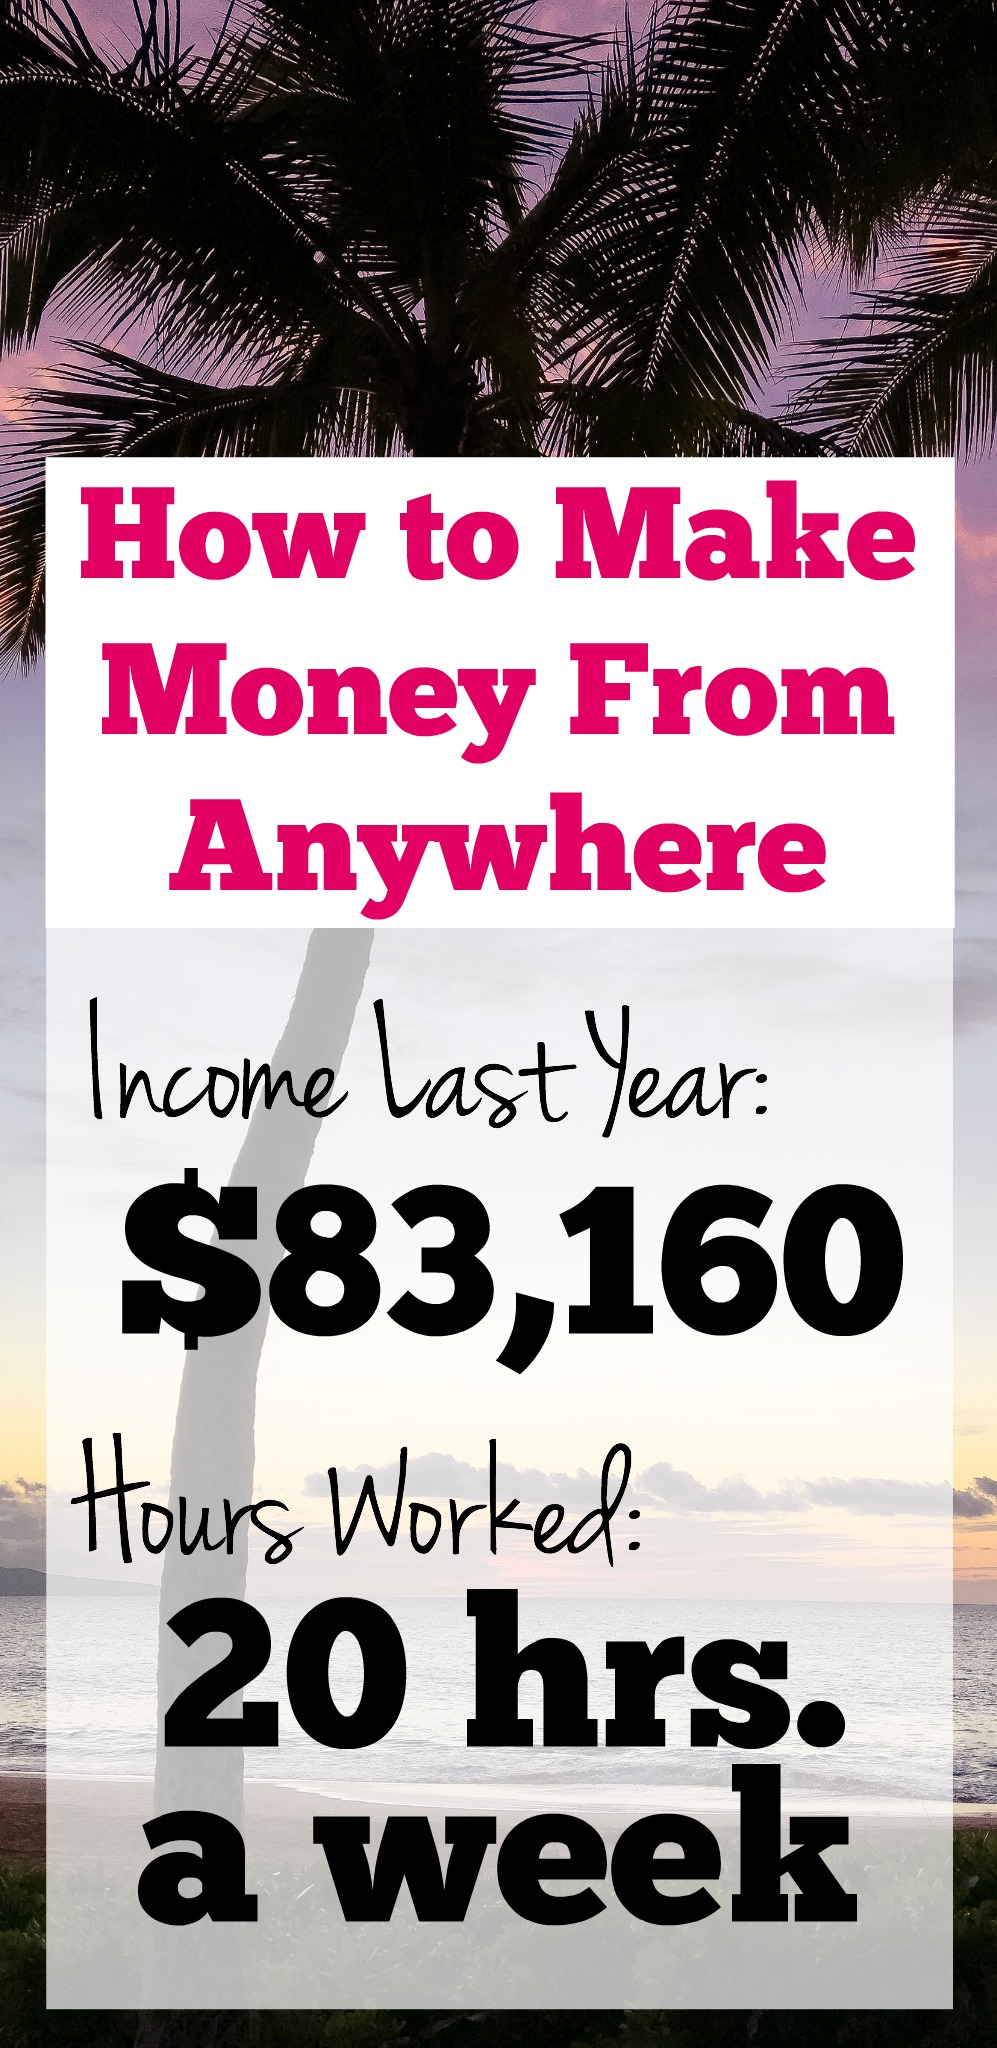 How to Make Money From Anywhere | Start a Blog | Become Location Independent | How to Fund Travel